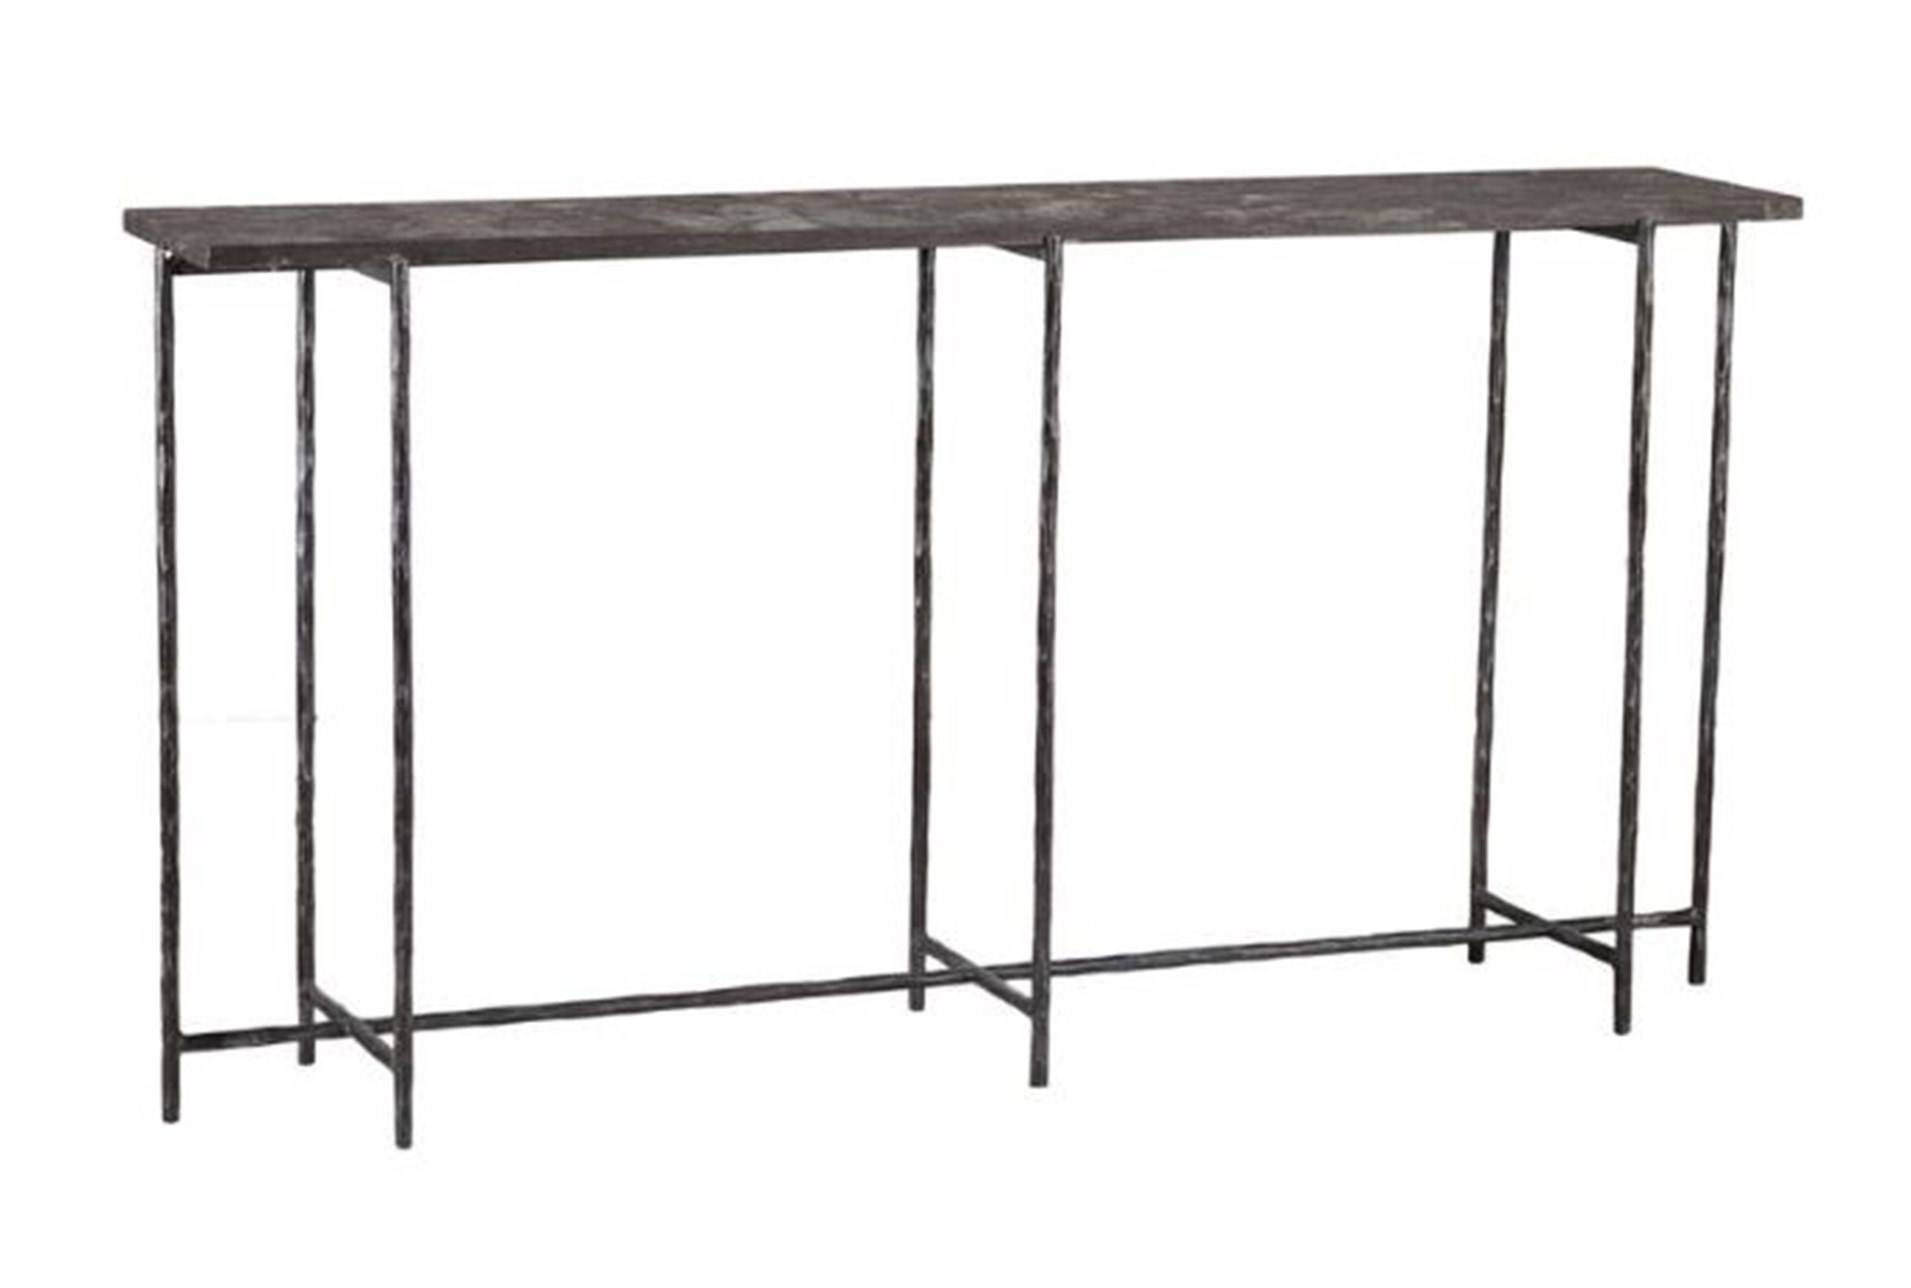 Cast iron 60 inch console table w stone qty 1 has been successfully added to your cart